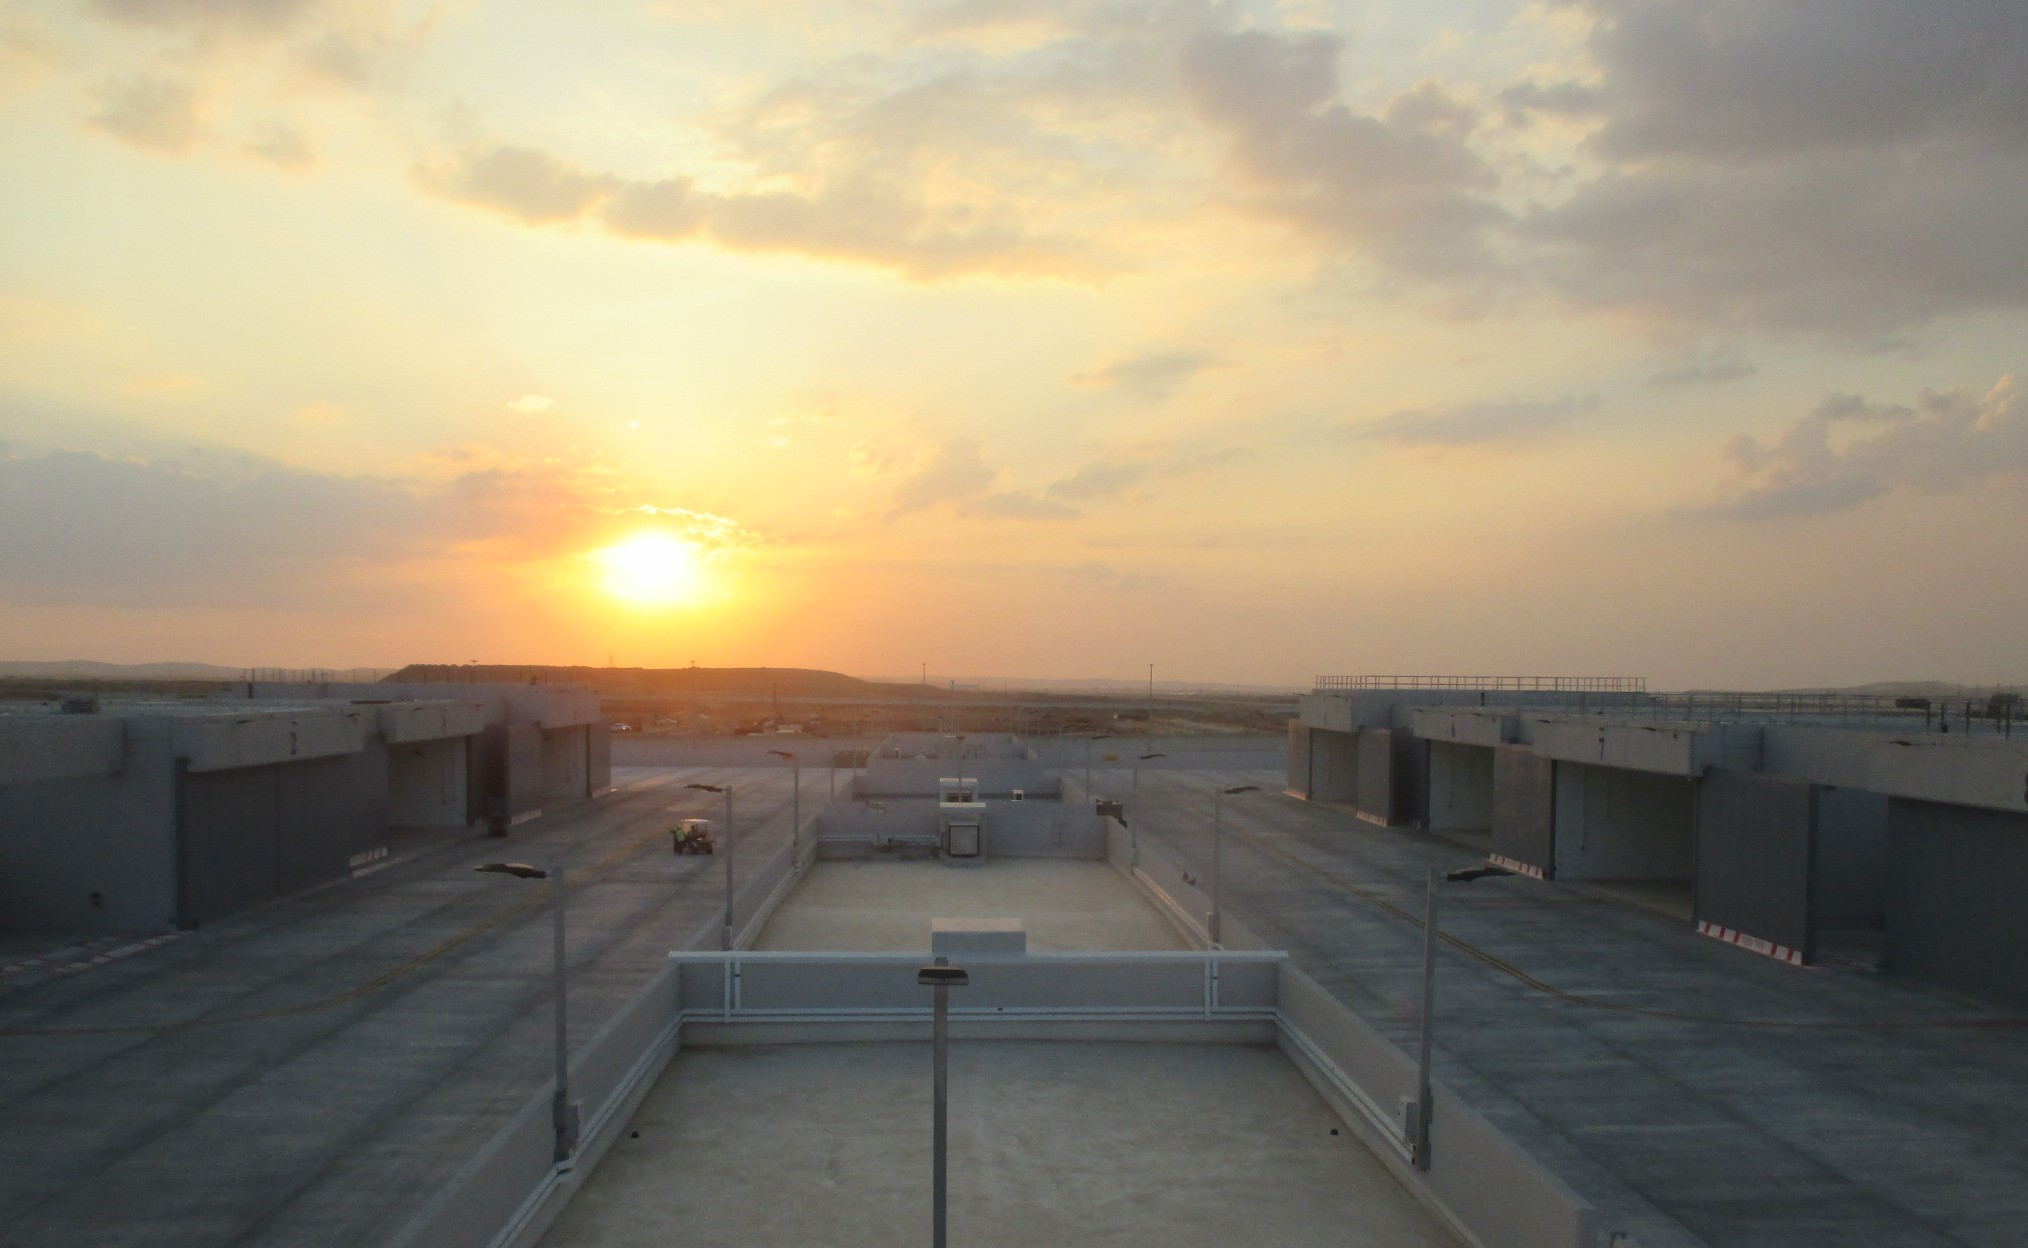 Conti Federal Delivers New Facilities to the Israel Air Force